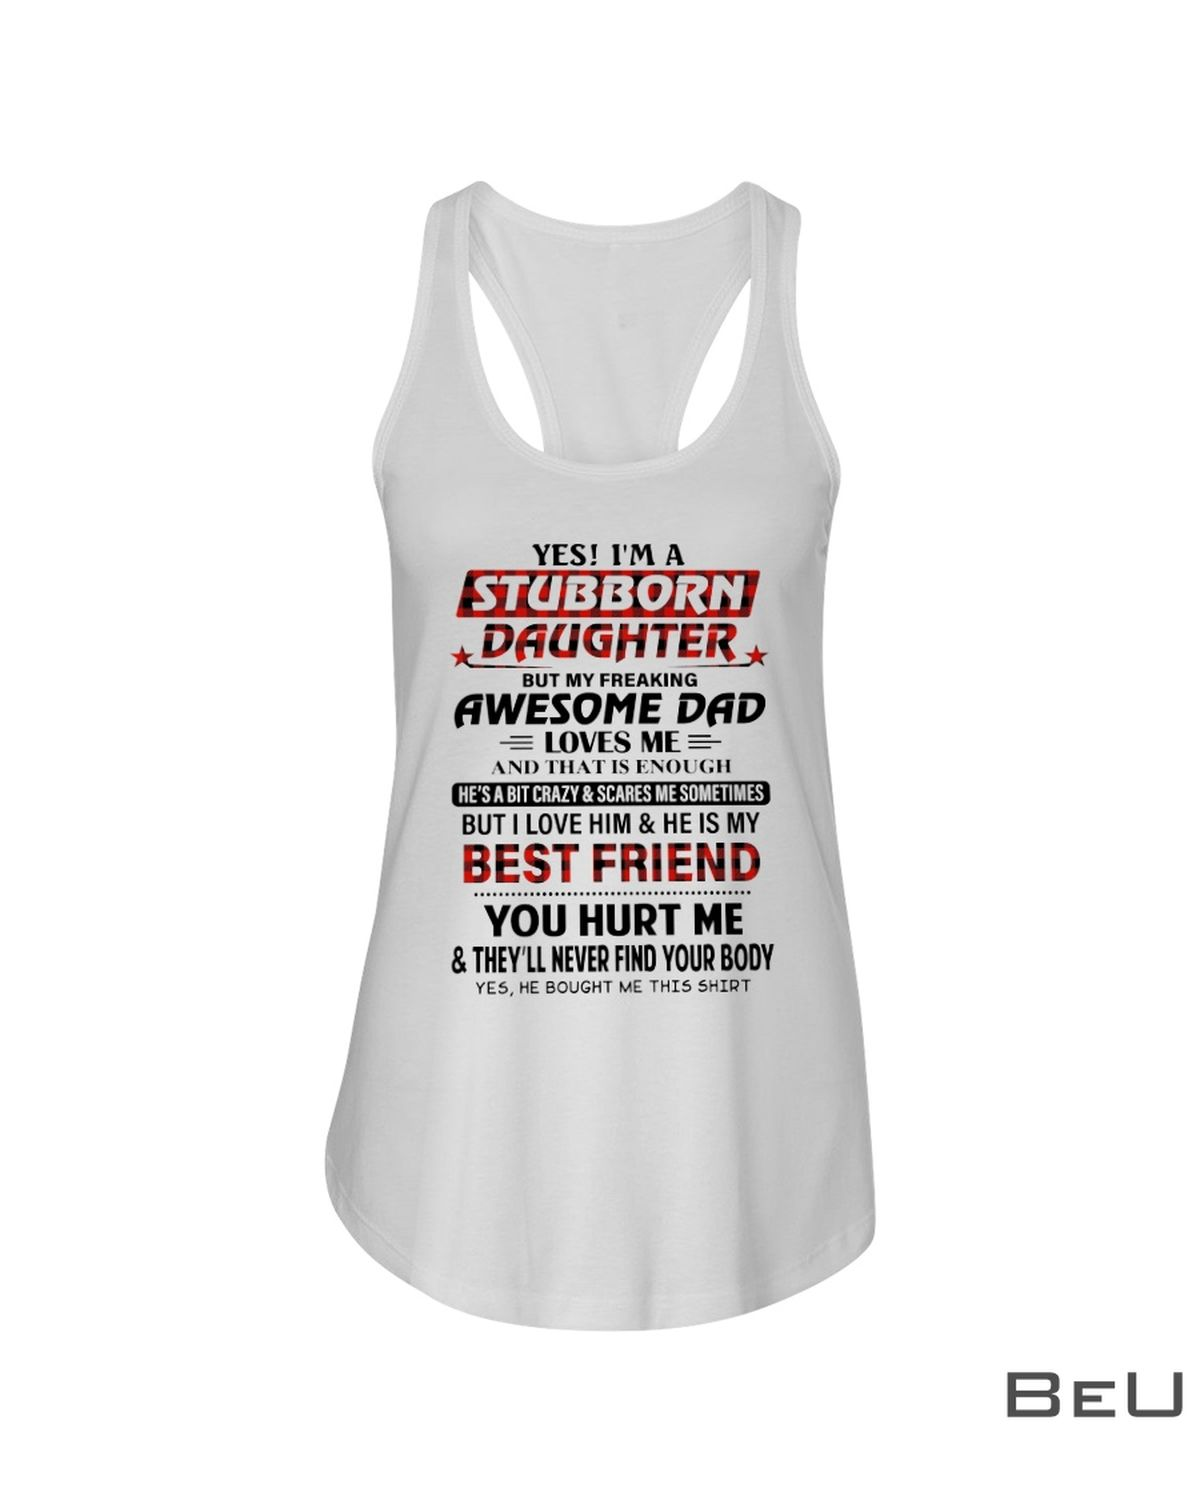 Yes I'm A Stubborn Daughter But My Freaking Awesome Dad Loves Me Shirtc